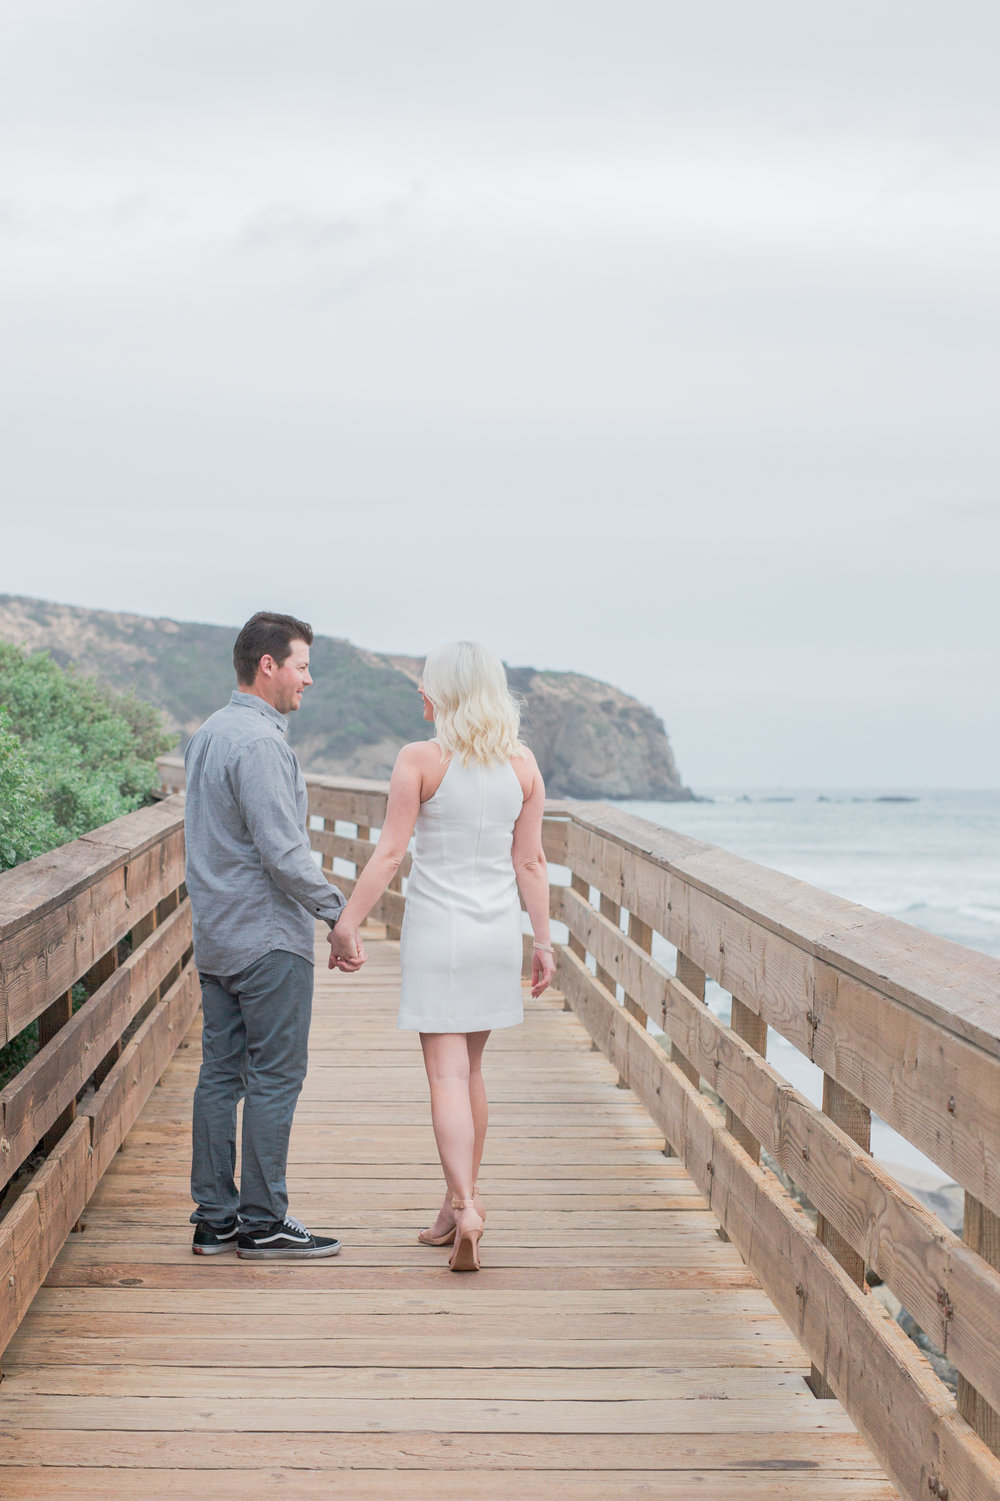 heather anderson photography, orange county wedding photographer, dana point engagement photos